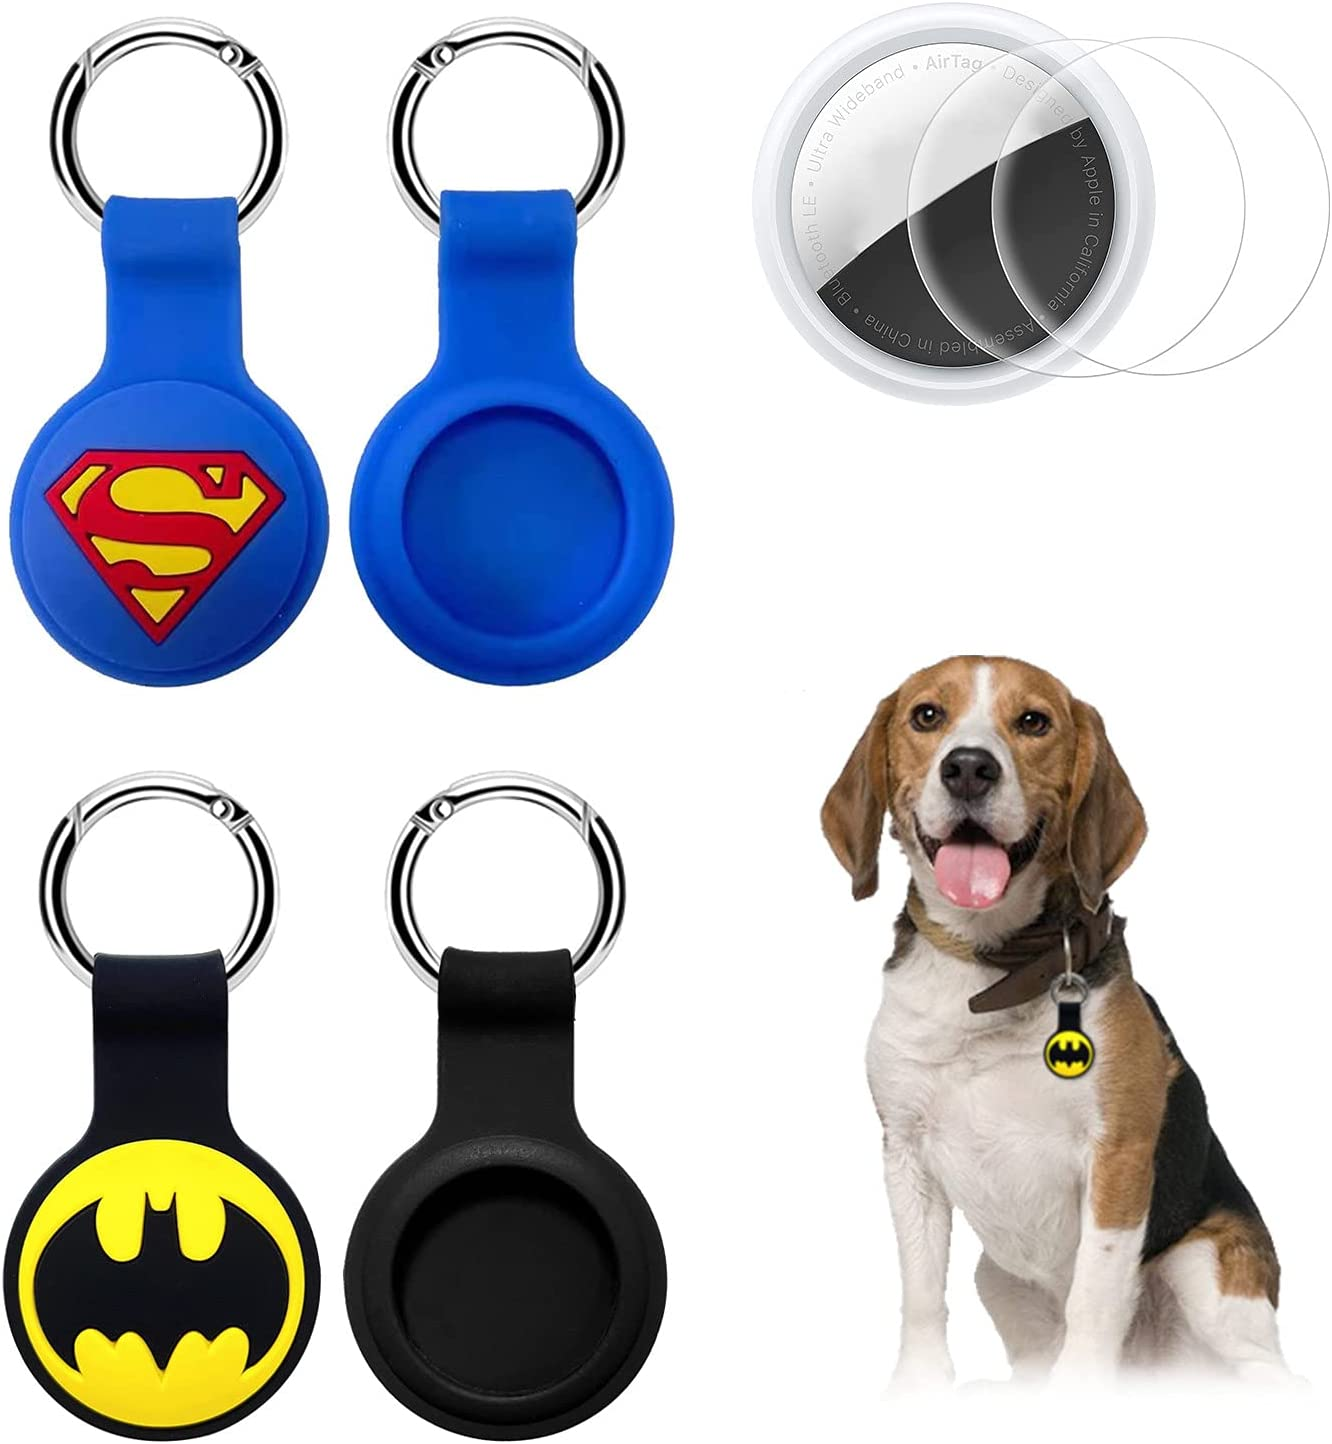 Airtag Case,Air tag Holder Keychain Key Ring Compatible with Apple Airtag Case, Safty Air Tags Airtags Lock Holder for Dog Collar 2 Pack